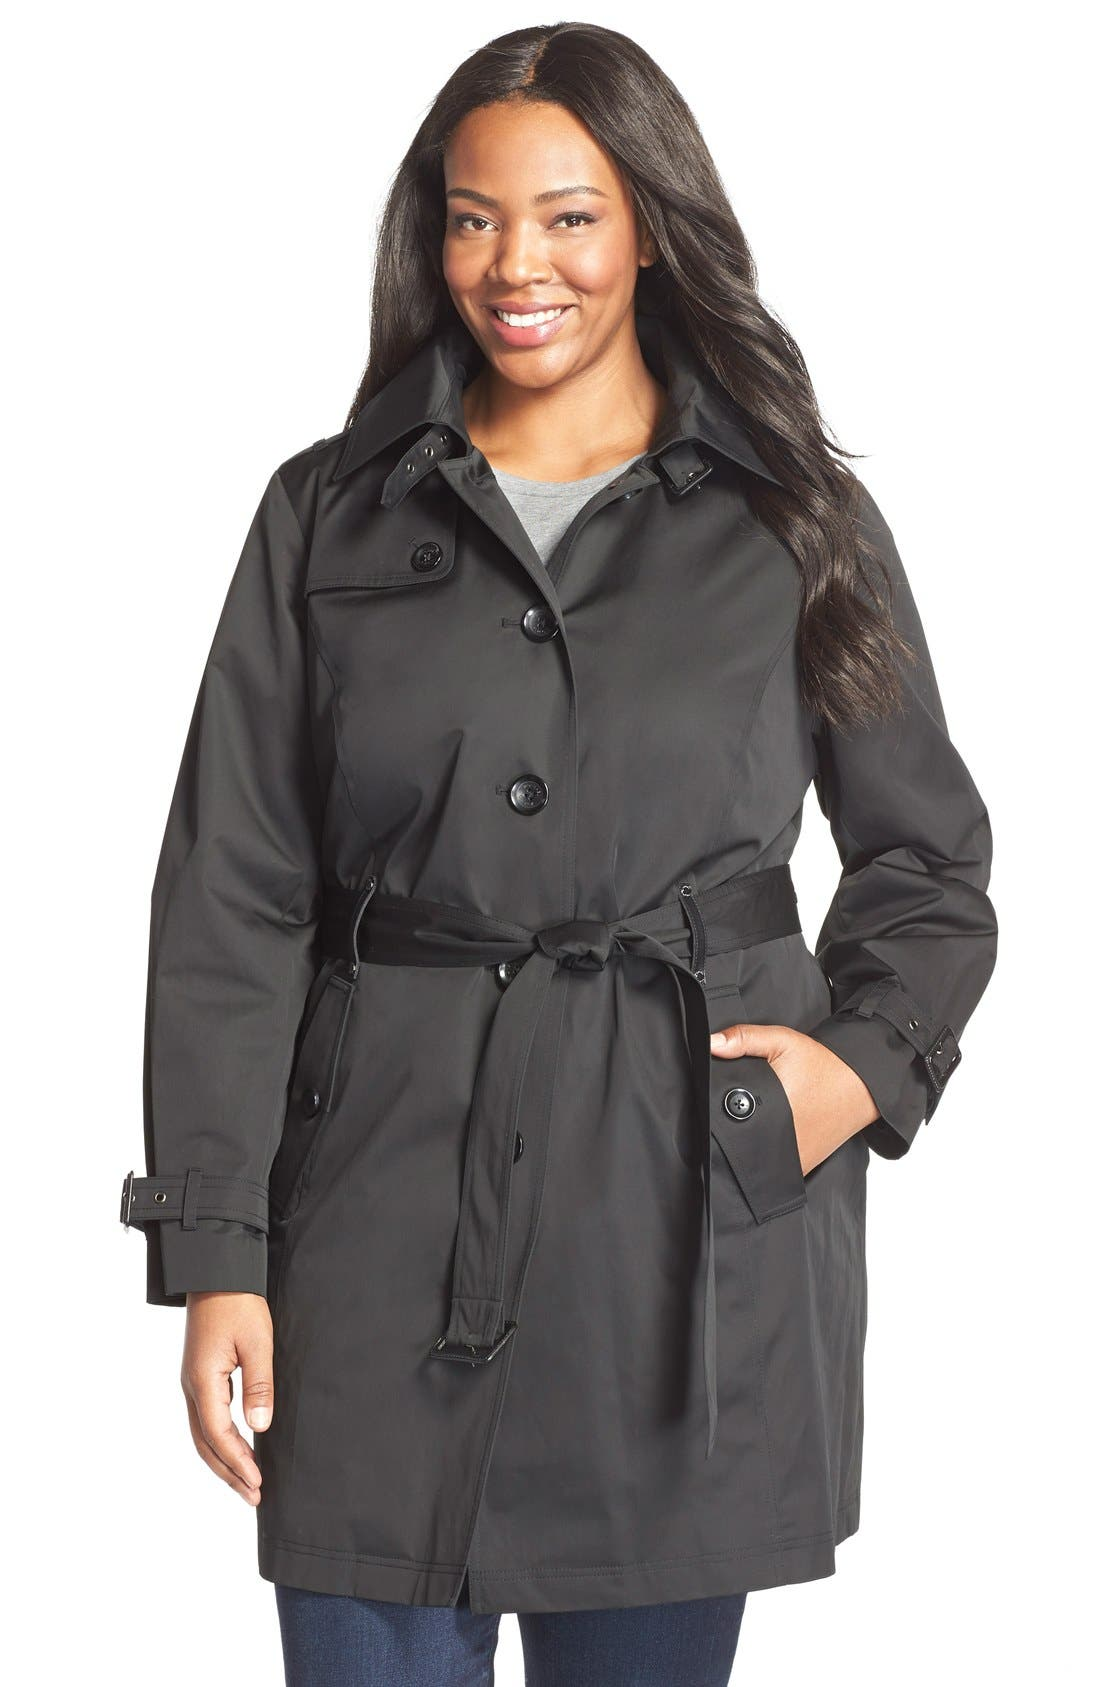 Alternate Image 1 Selected - MICHAEL Michael Kors Single Breasted Raincoat (Plus Size)